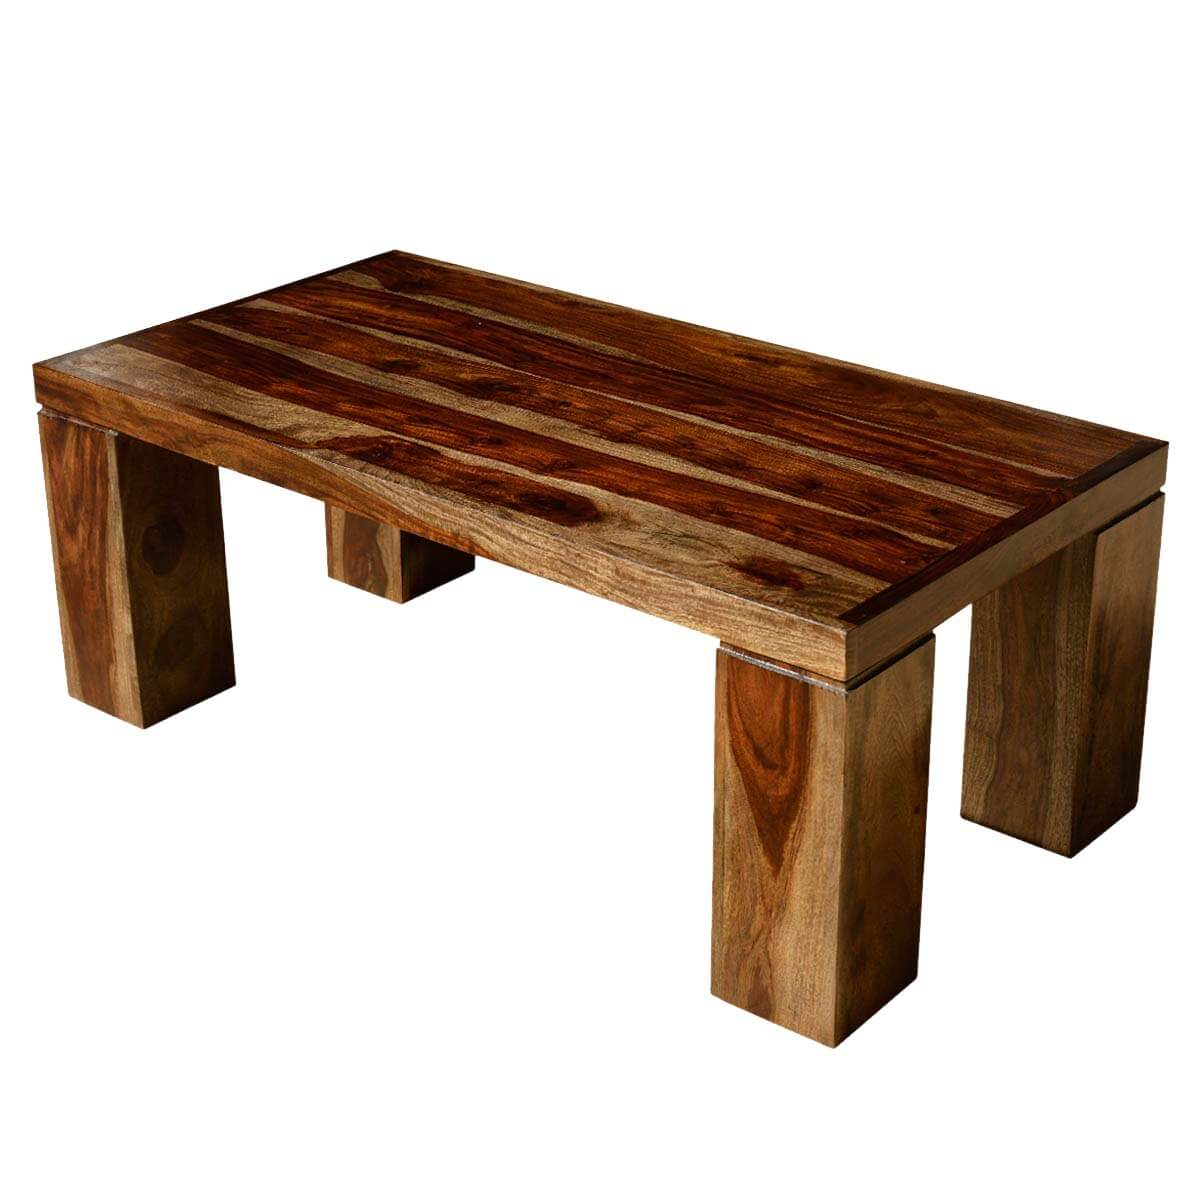 Contemporary solid wood espresso coffee table w block legs for Solid wood coffee table